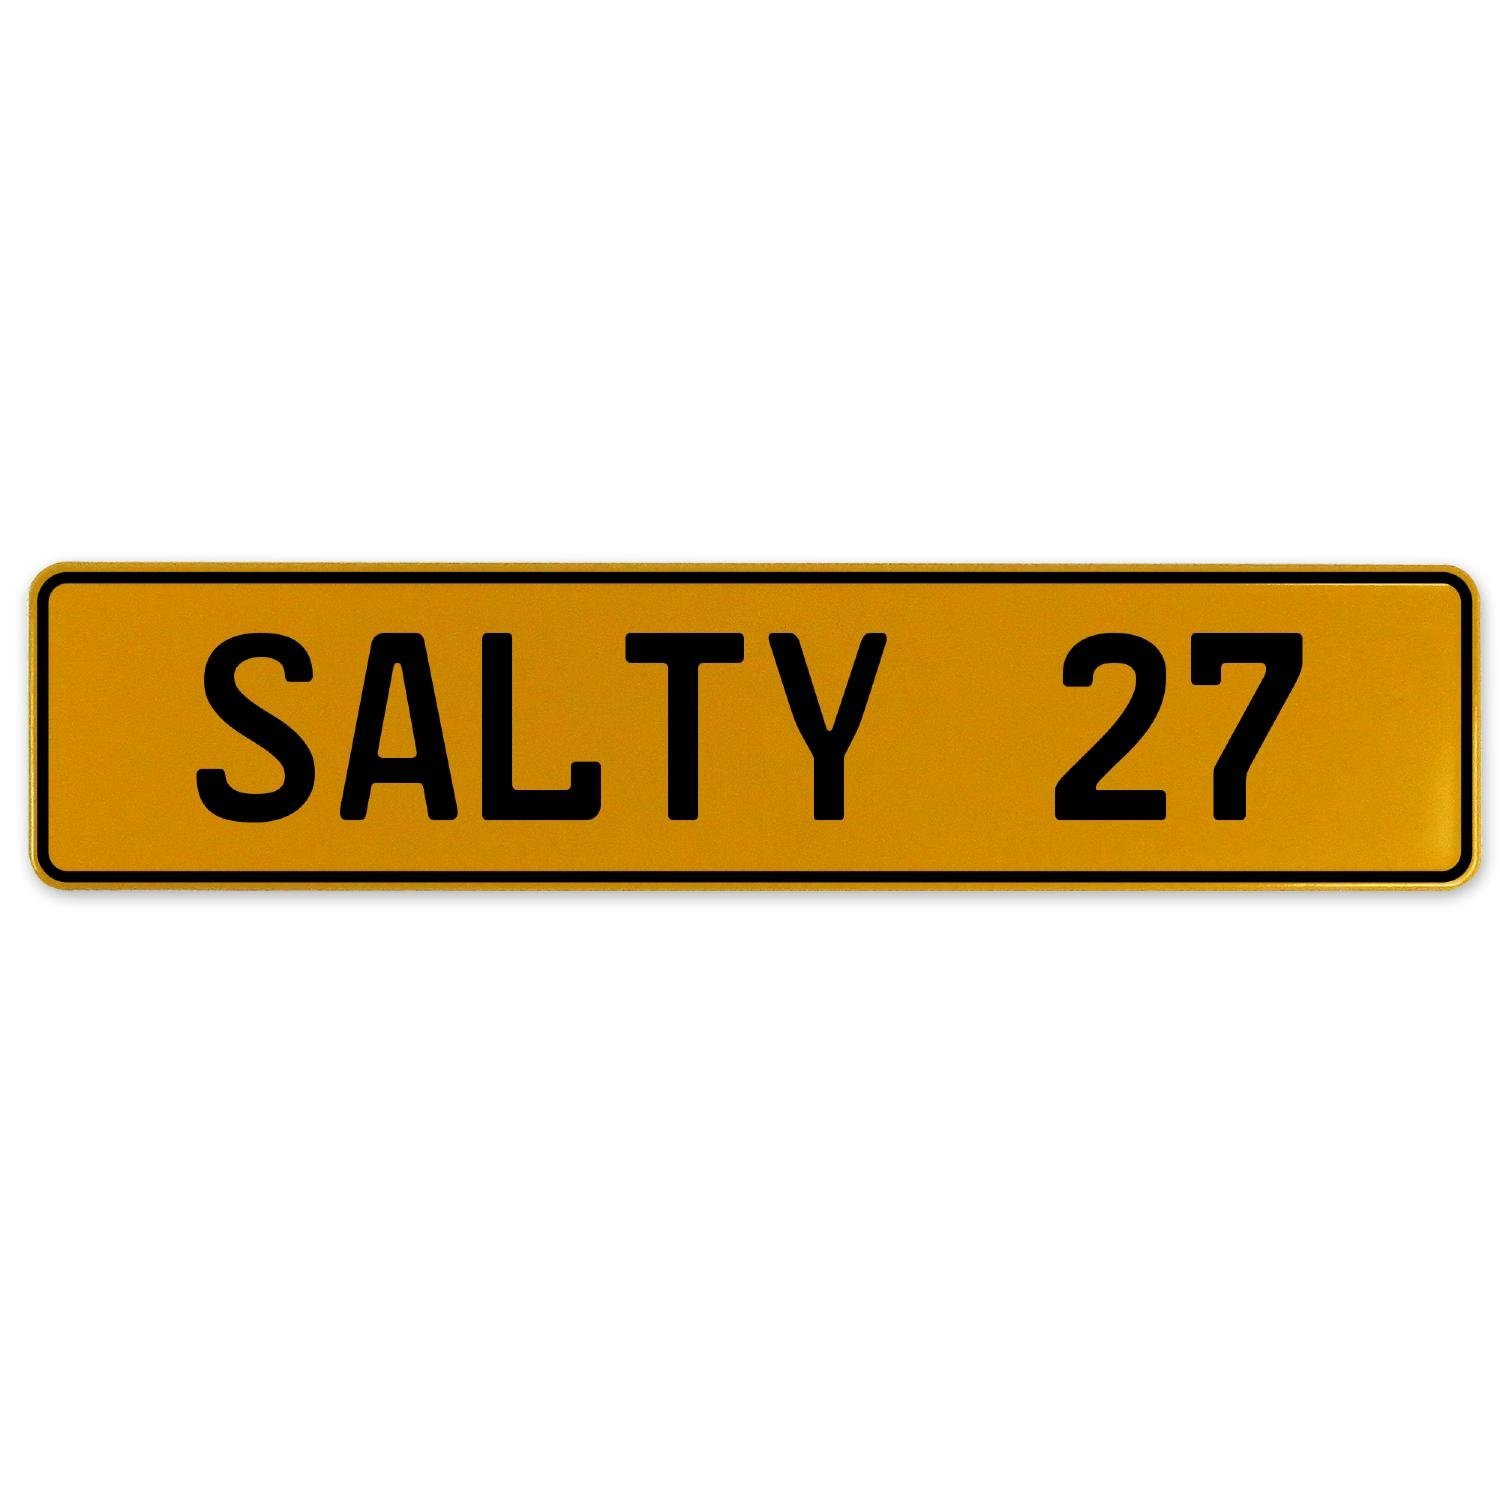 Vintage Parts 561753 Salty 27 Yellow Stamped Aluminum European Plate